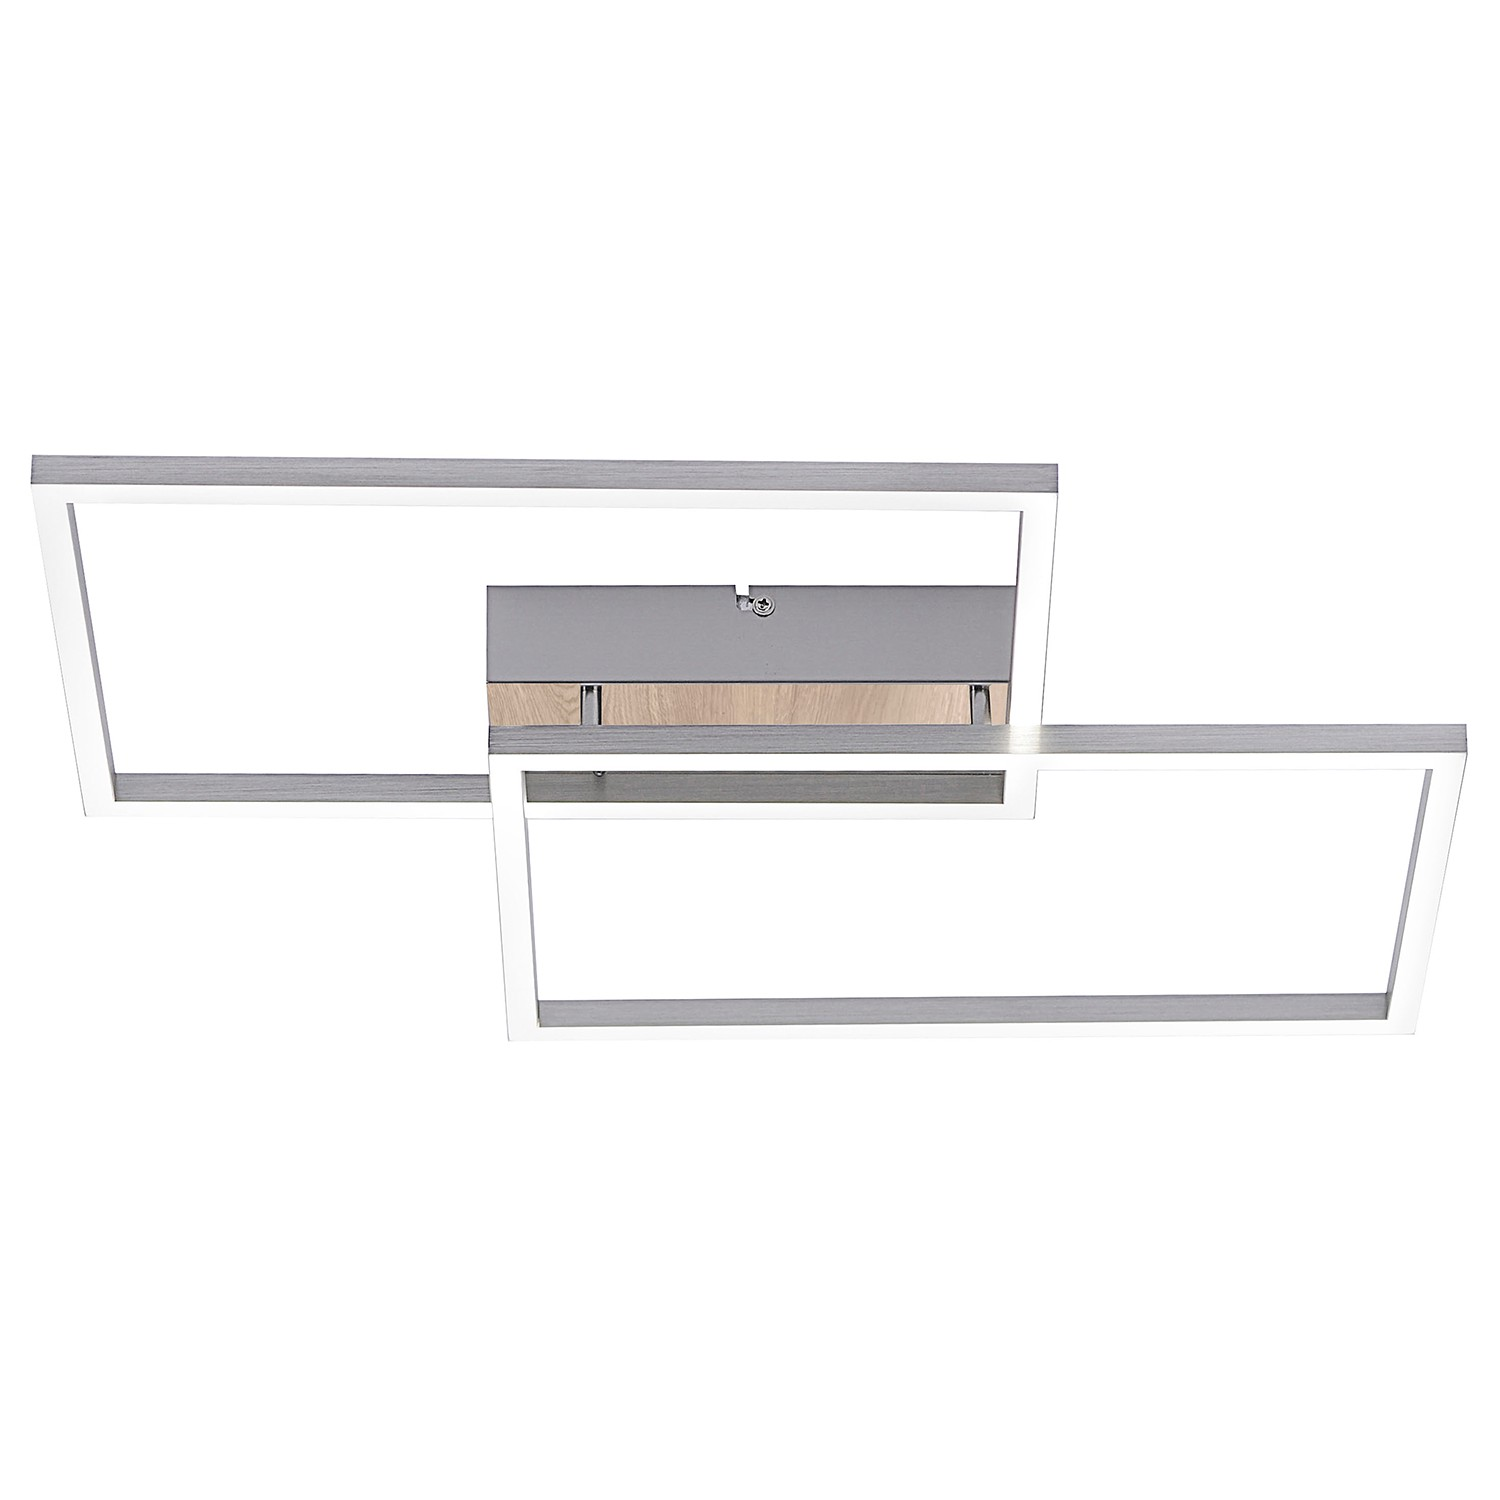 home24 LED-Deckenleuchte Iven III